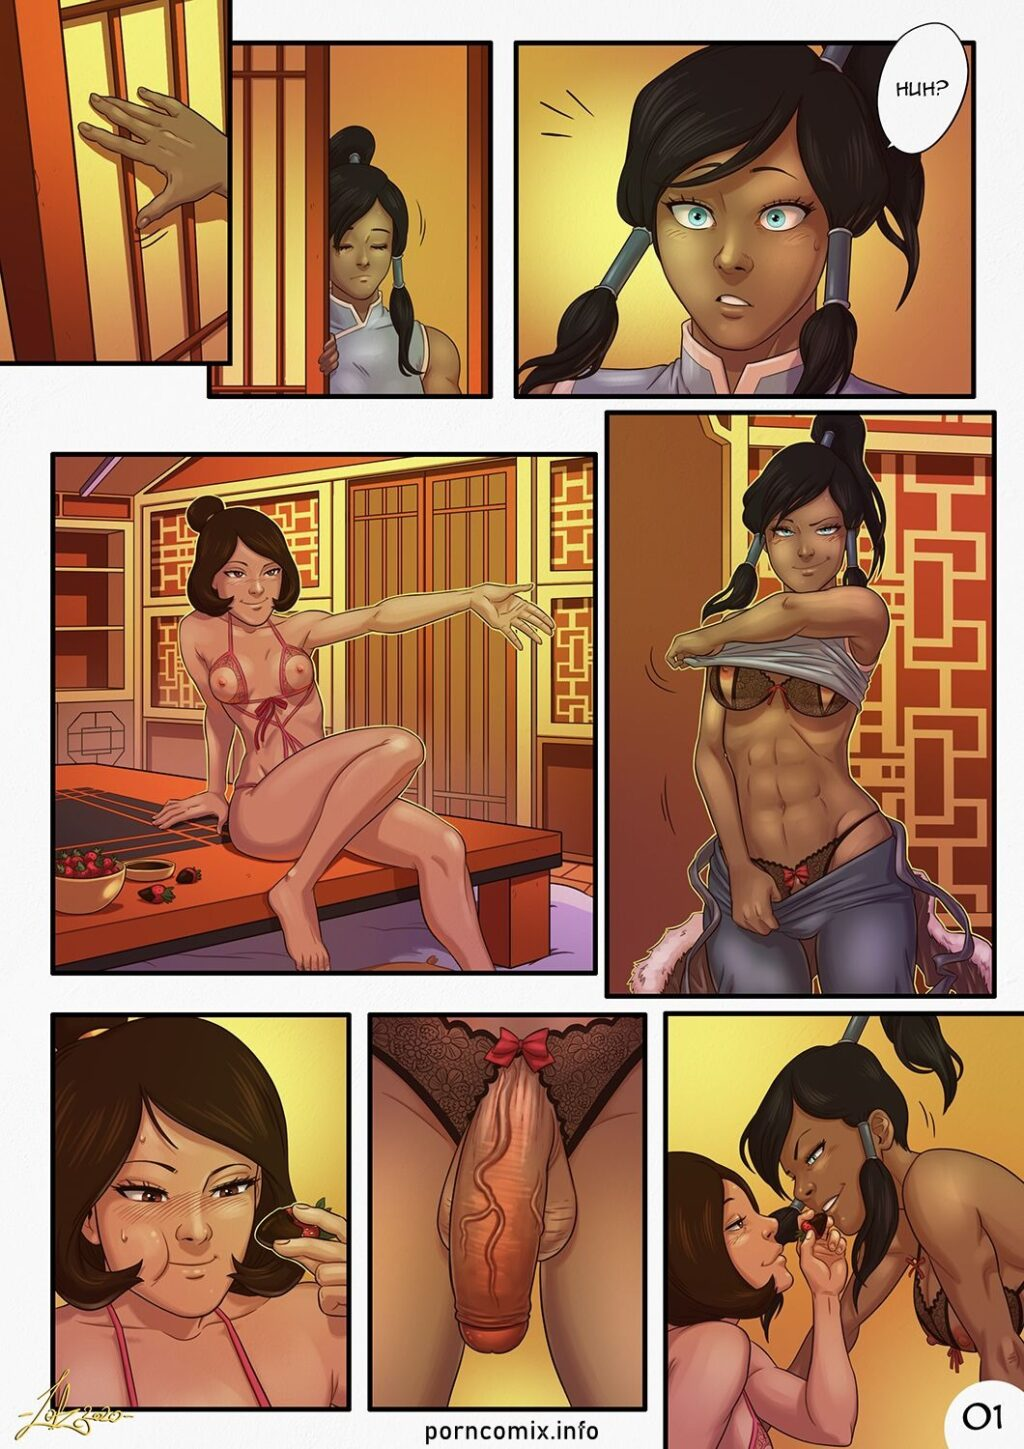 Avatar-The-Last-Air-bender-Porn-interracial-sex-Comic-Futanari-Lesbian-girl-on-girl-cum-on-stomach-small-breasts-Legend-of-Korra-x-Jinora